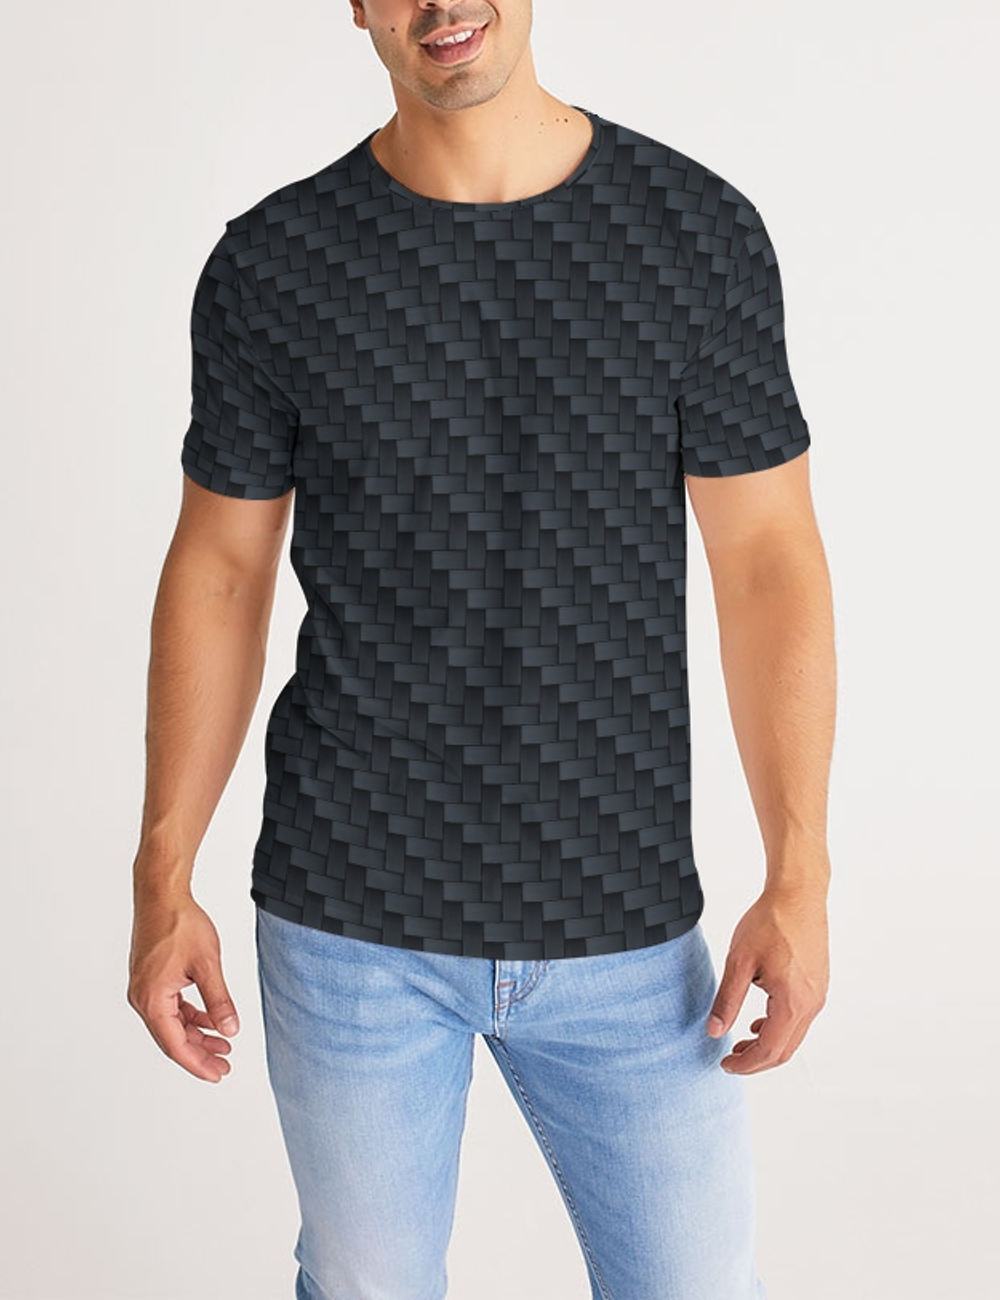 Metallic Fabric Pattern Print Design | Men's Sublimated T-Shirt